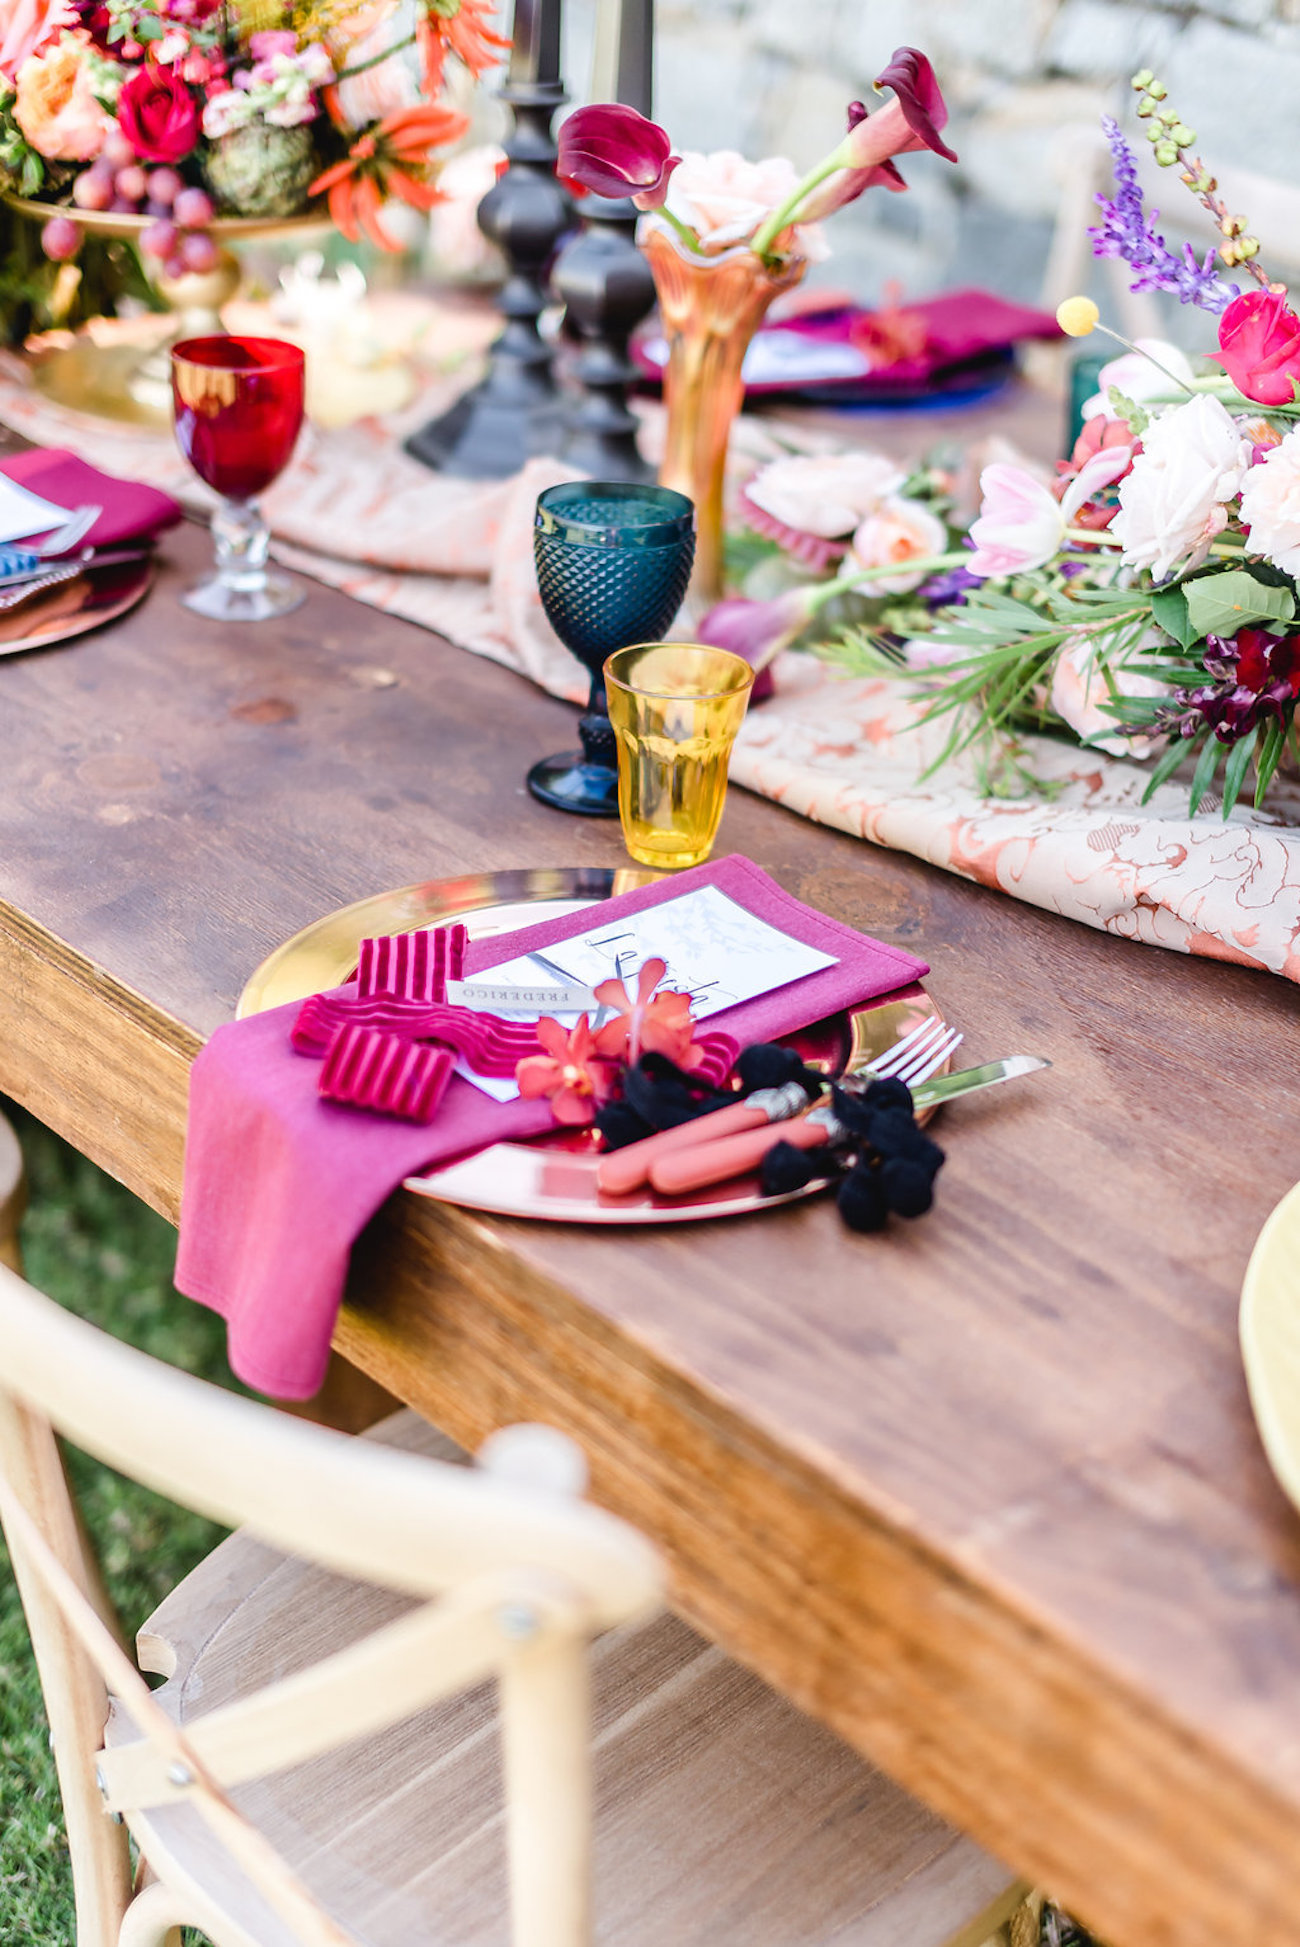 Colorful Table Setting | Credit: Jacoba Clothing/PhotoKru